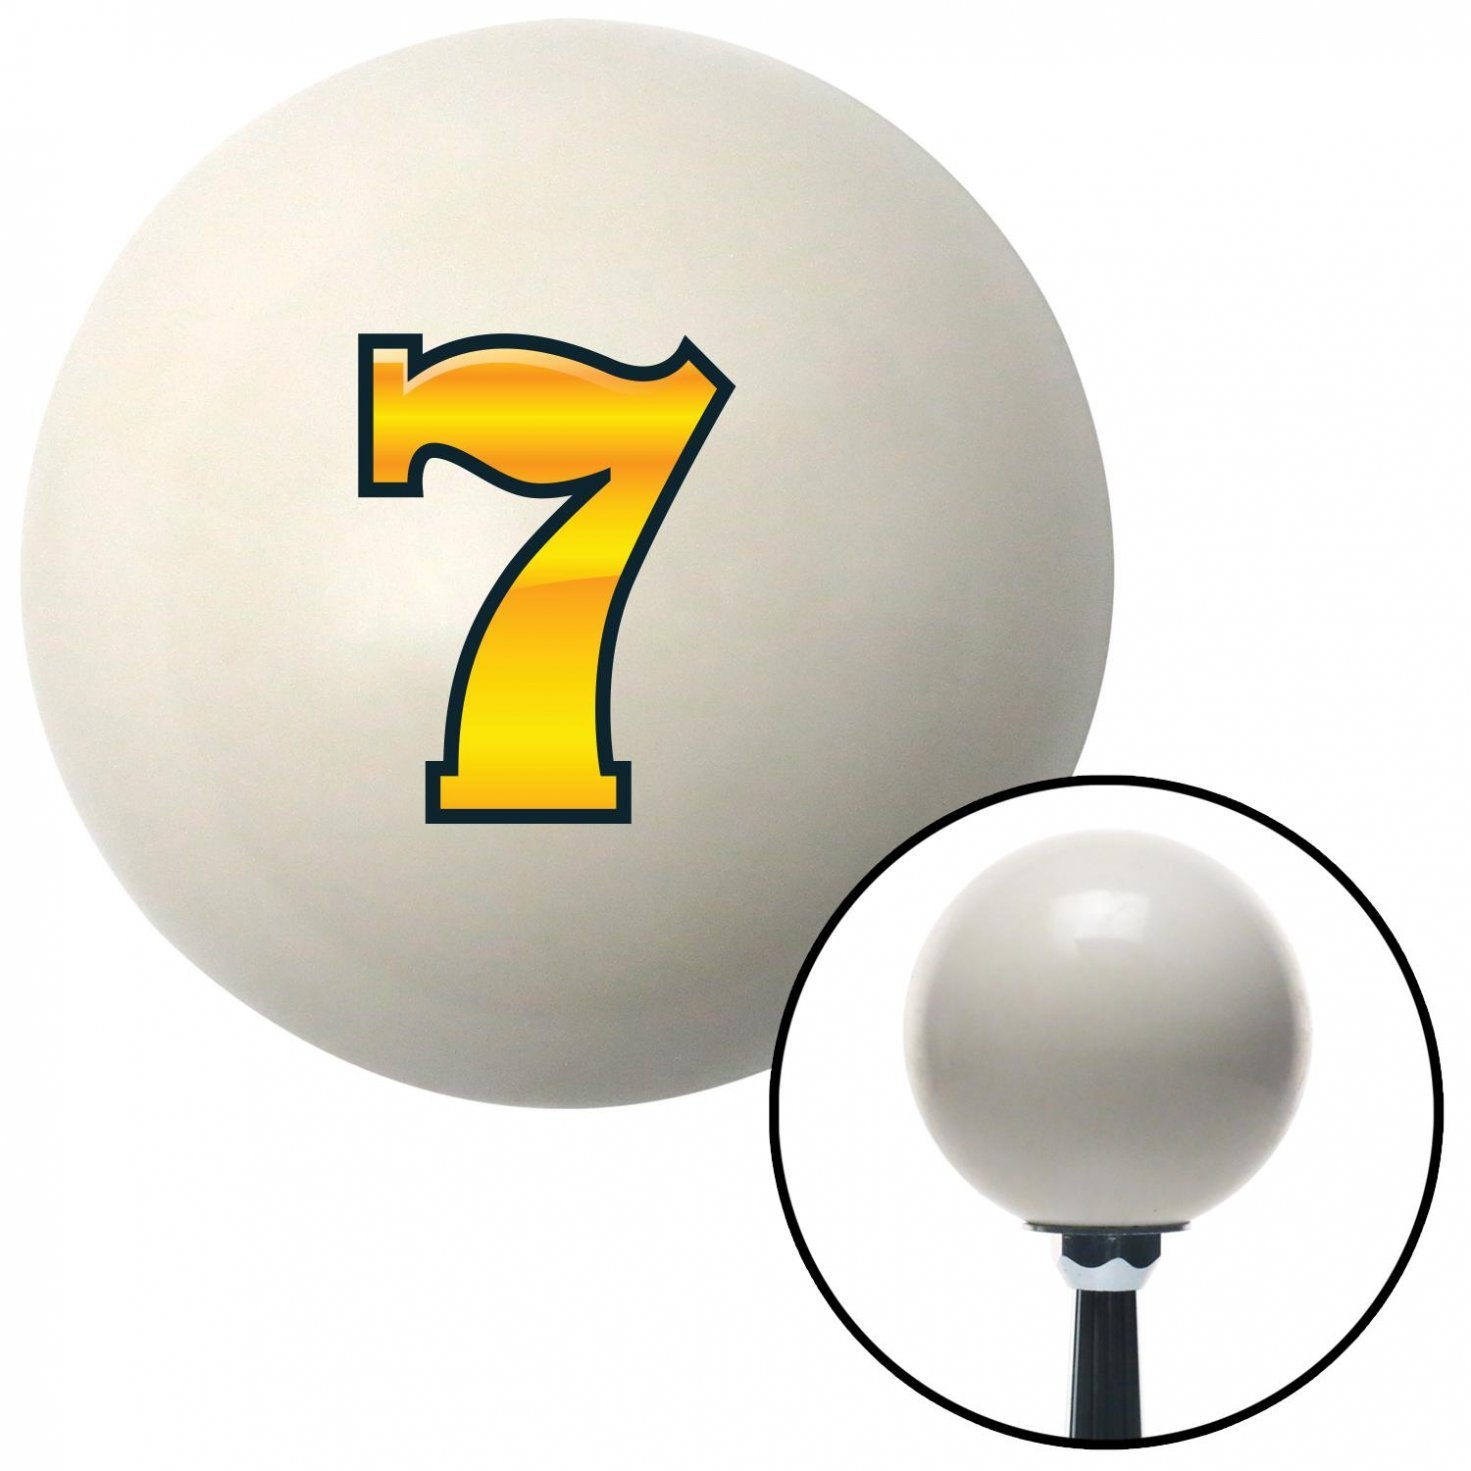 American Shifter 42400 Ivory Shift Knob with 16mm x 1.5 Insert 7 Gold